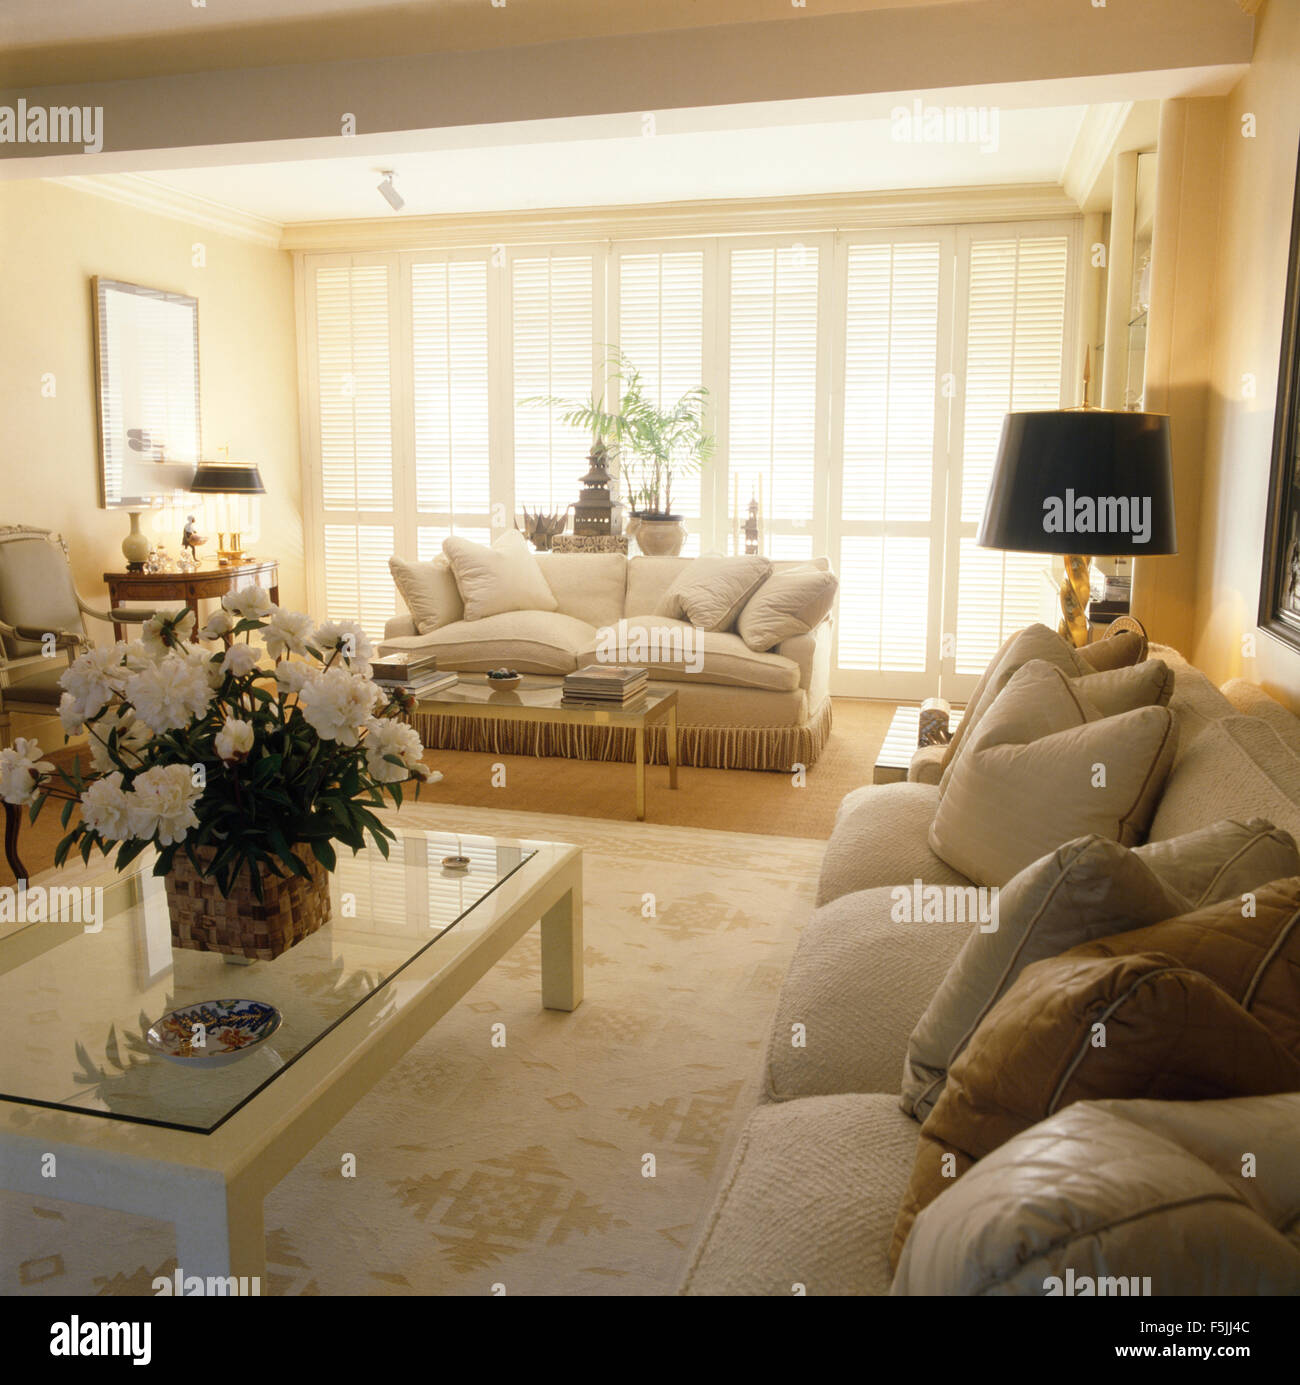 Cream Coffee Table And Cream Sofas In An Eighties Living